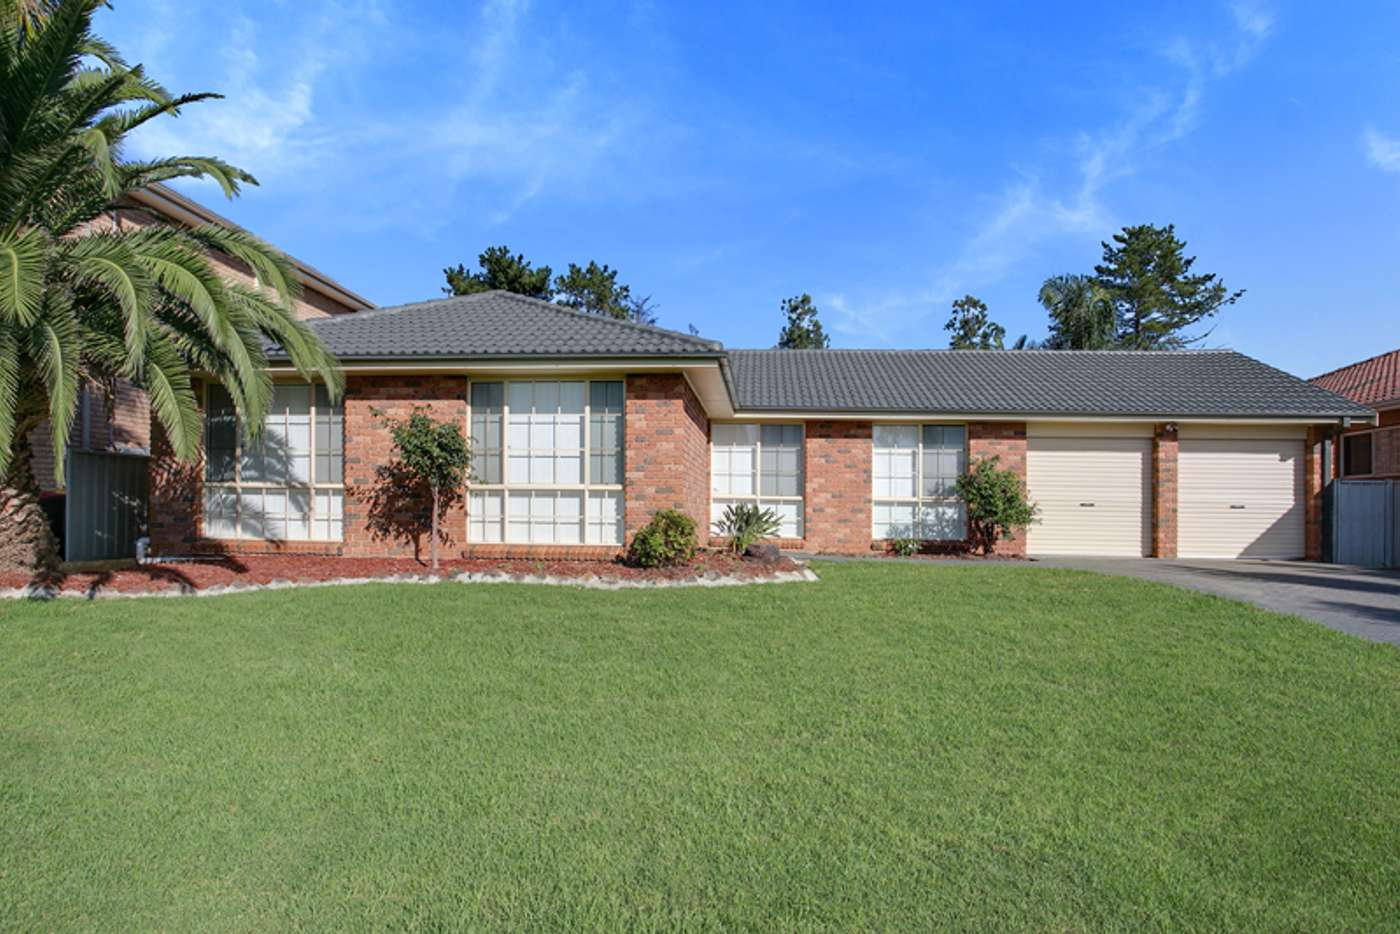 Main view of Homely house listing, 25 Darling Street, Abbotsbury NSW 2176